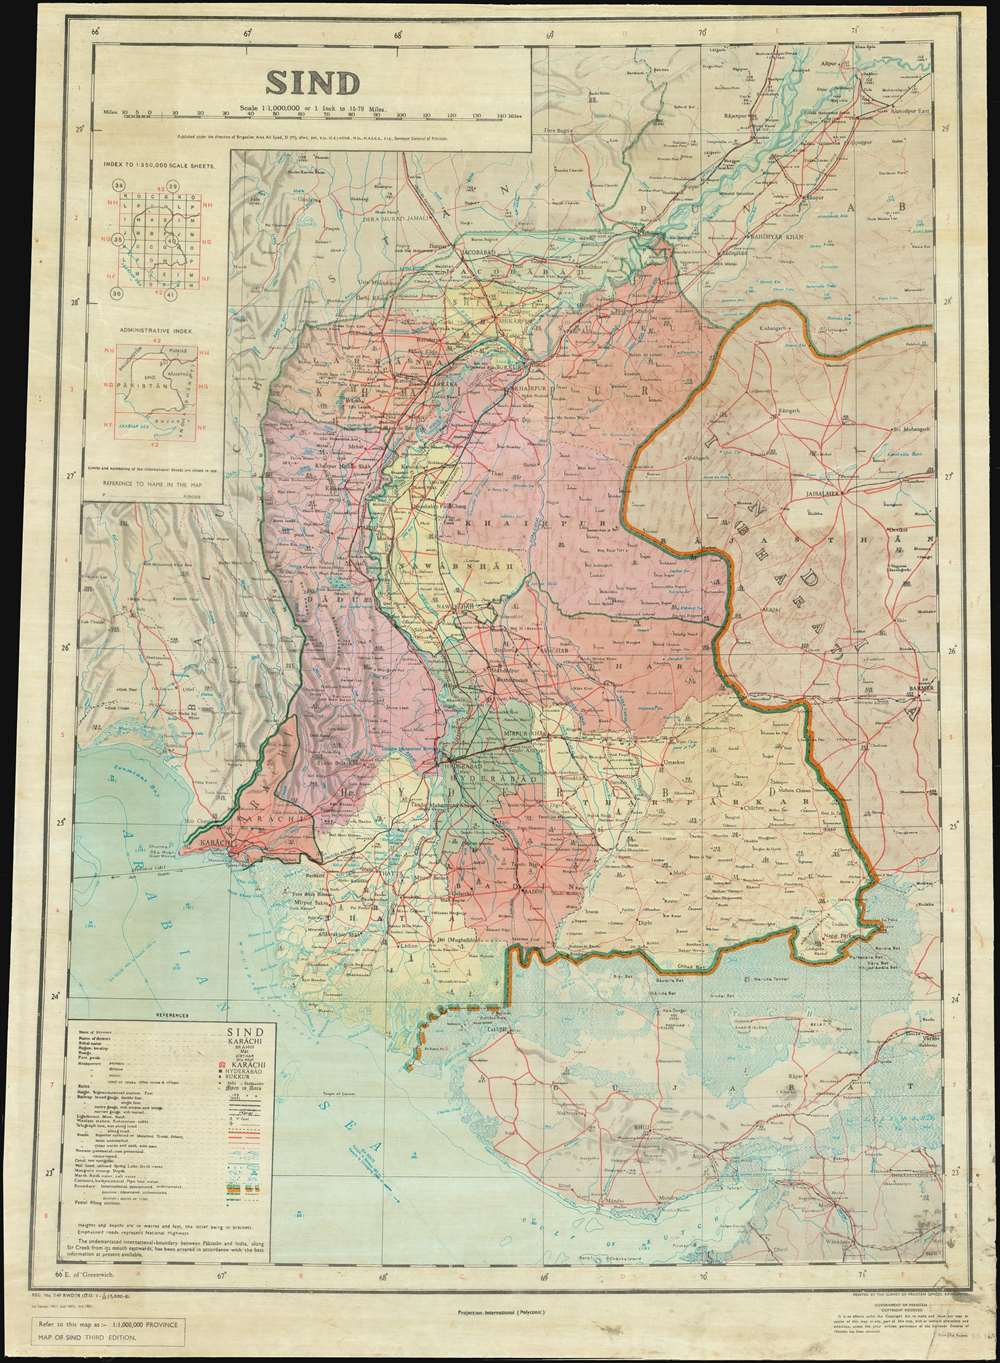 1981 Syed and Survey of Pakistan Map of Sindh Province, Pakistan